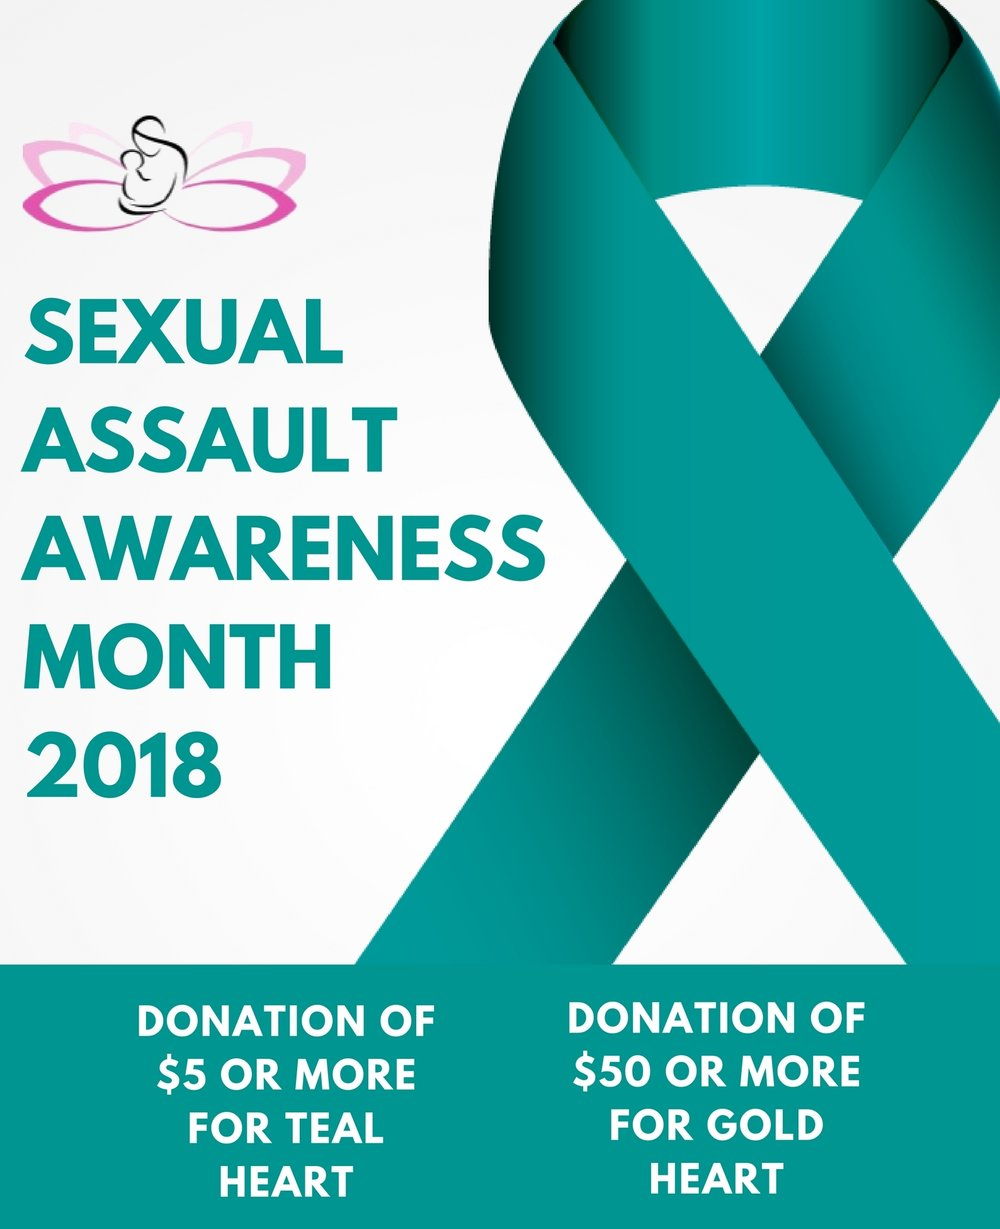 Helping Hearts - A fundraiser in partnership with Hugo's and Leevers to show support for survivors of sexual assault in our community during April of 2018. Individuals, businesses, and organizations who donated in honor of sexual assault awareness month had their names placed on hearts, which were displayed at locations throughout the counties.